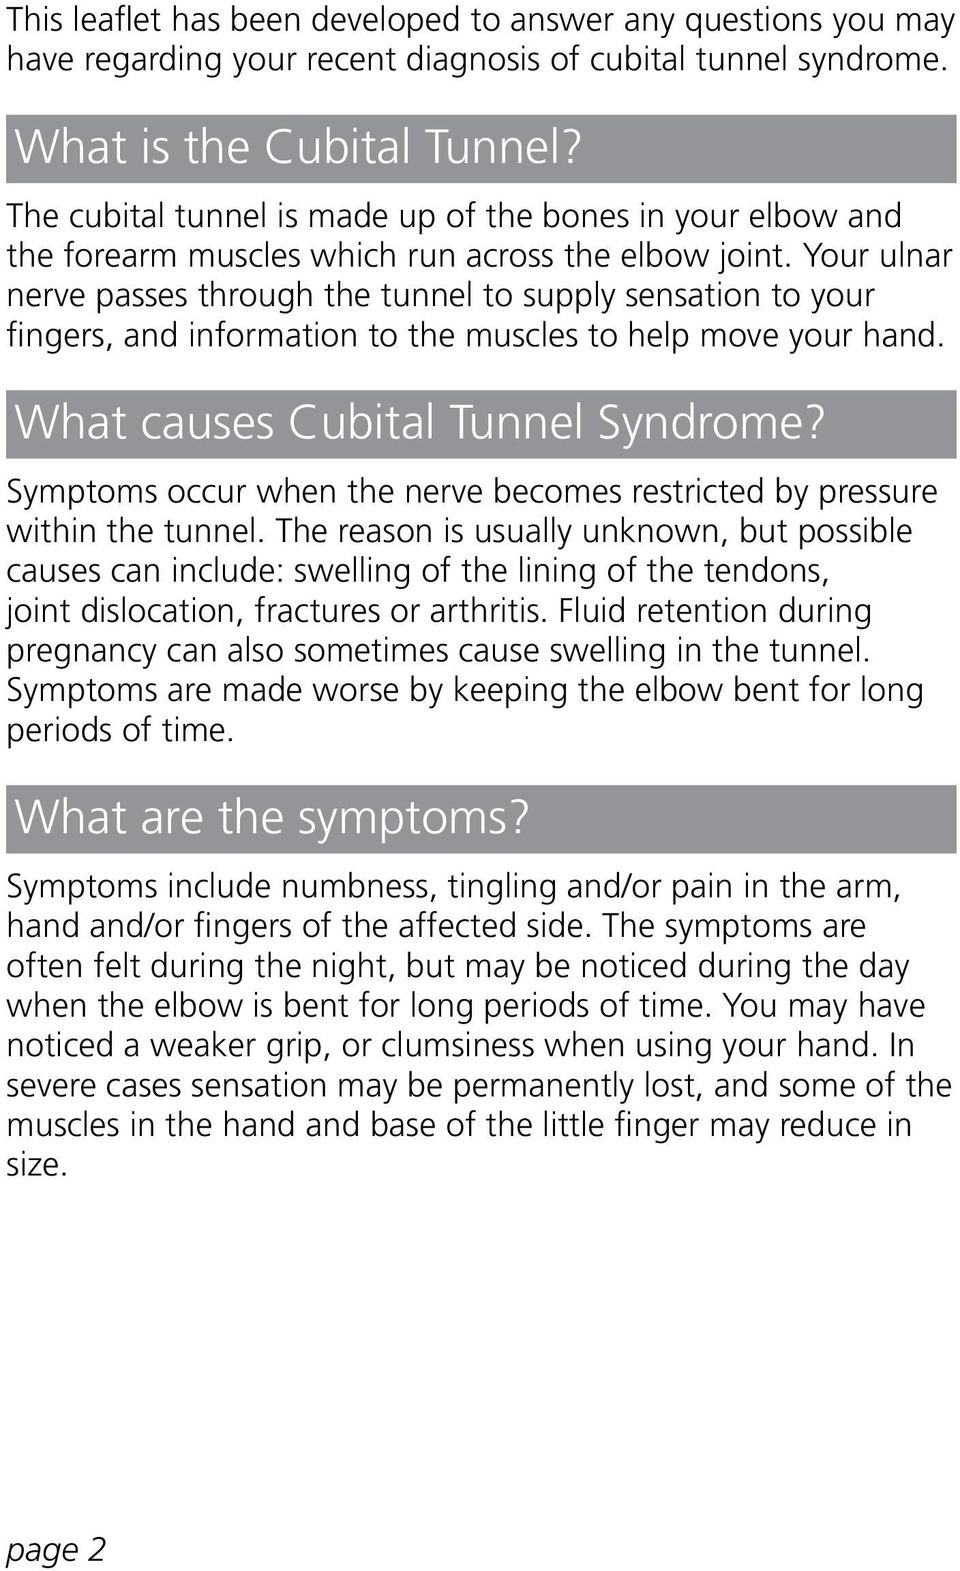 Your ulnar nerve passes through the tunnel to supply sensation to your fingers, and information to the muscles to help move your hand. What causes Cubital Tunnel Syndrome?